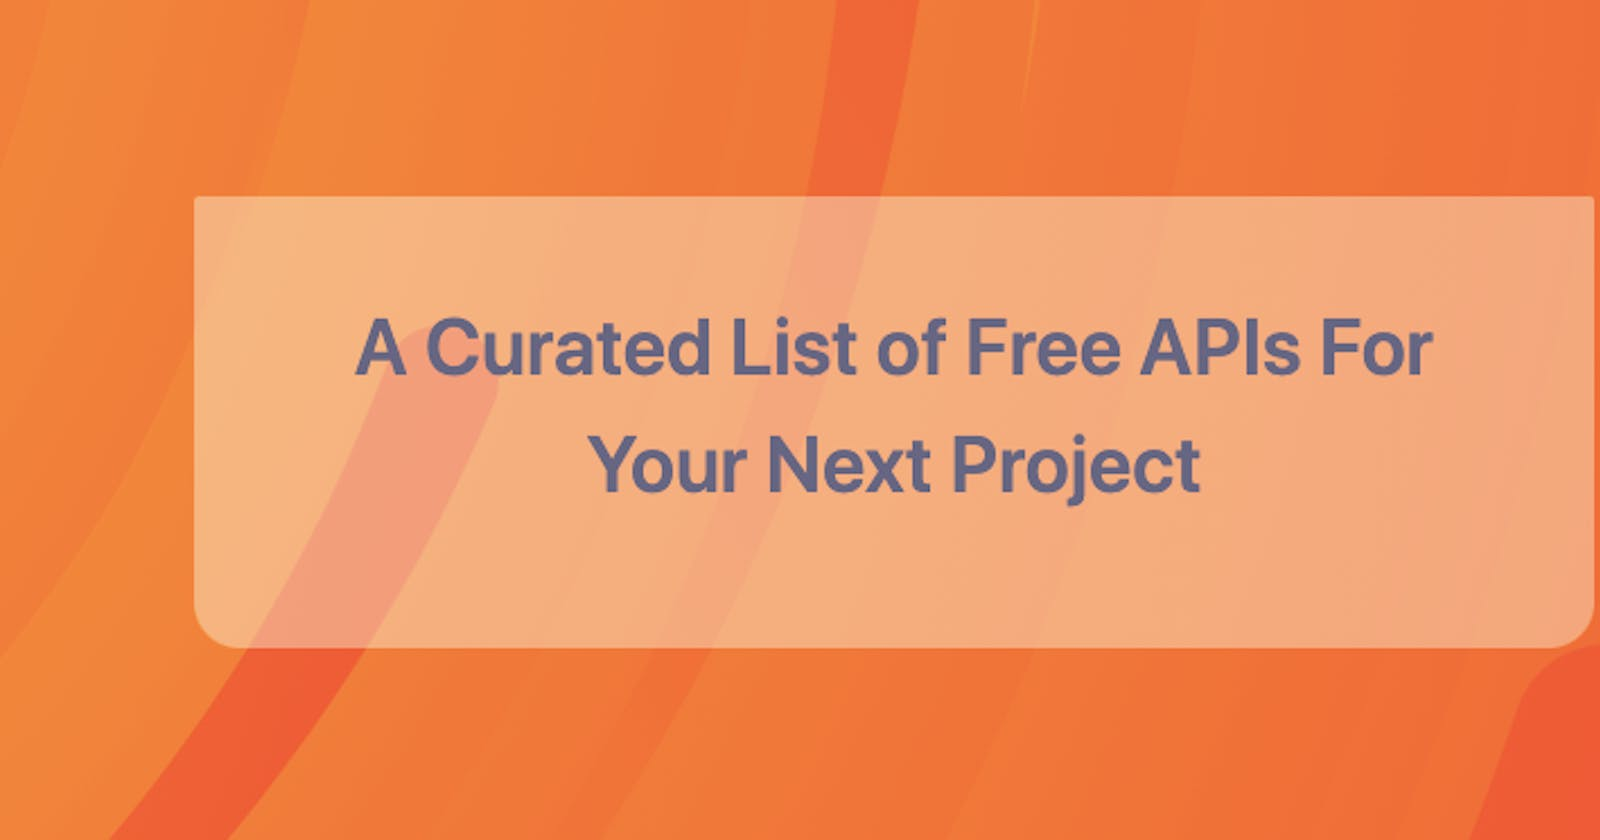 A Curated List of Free APIs For Your Next Project